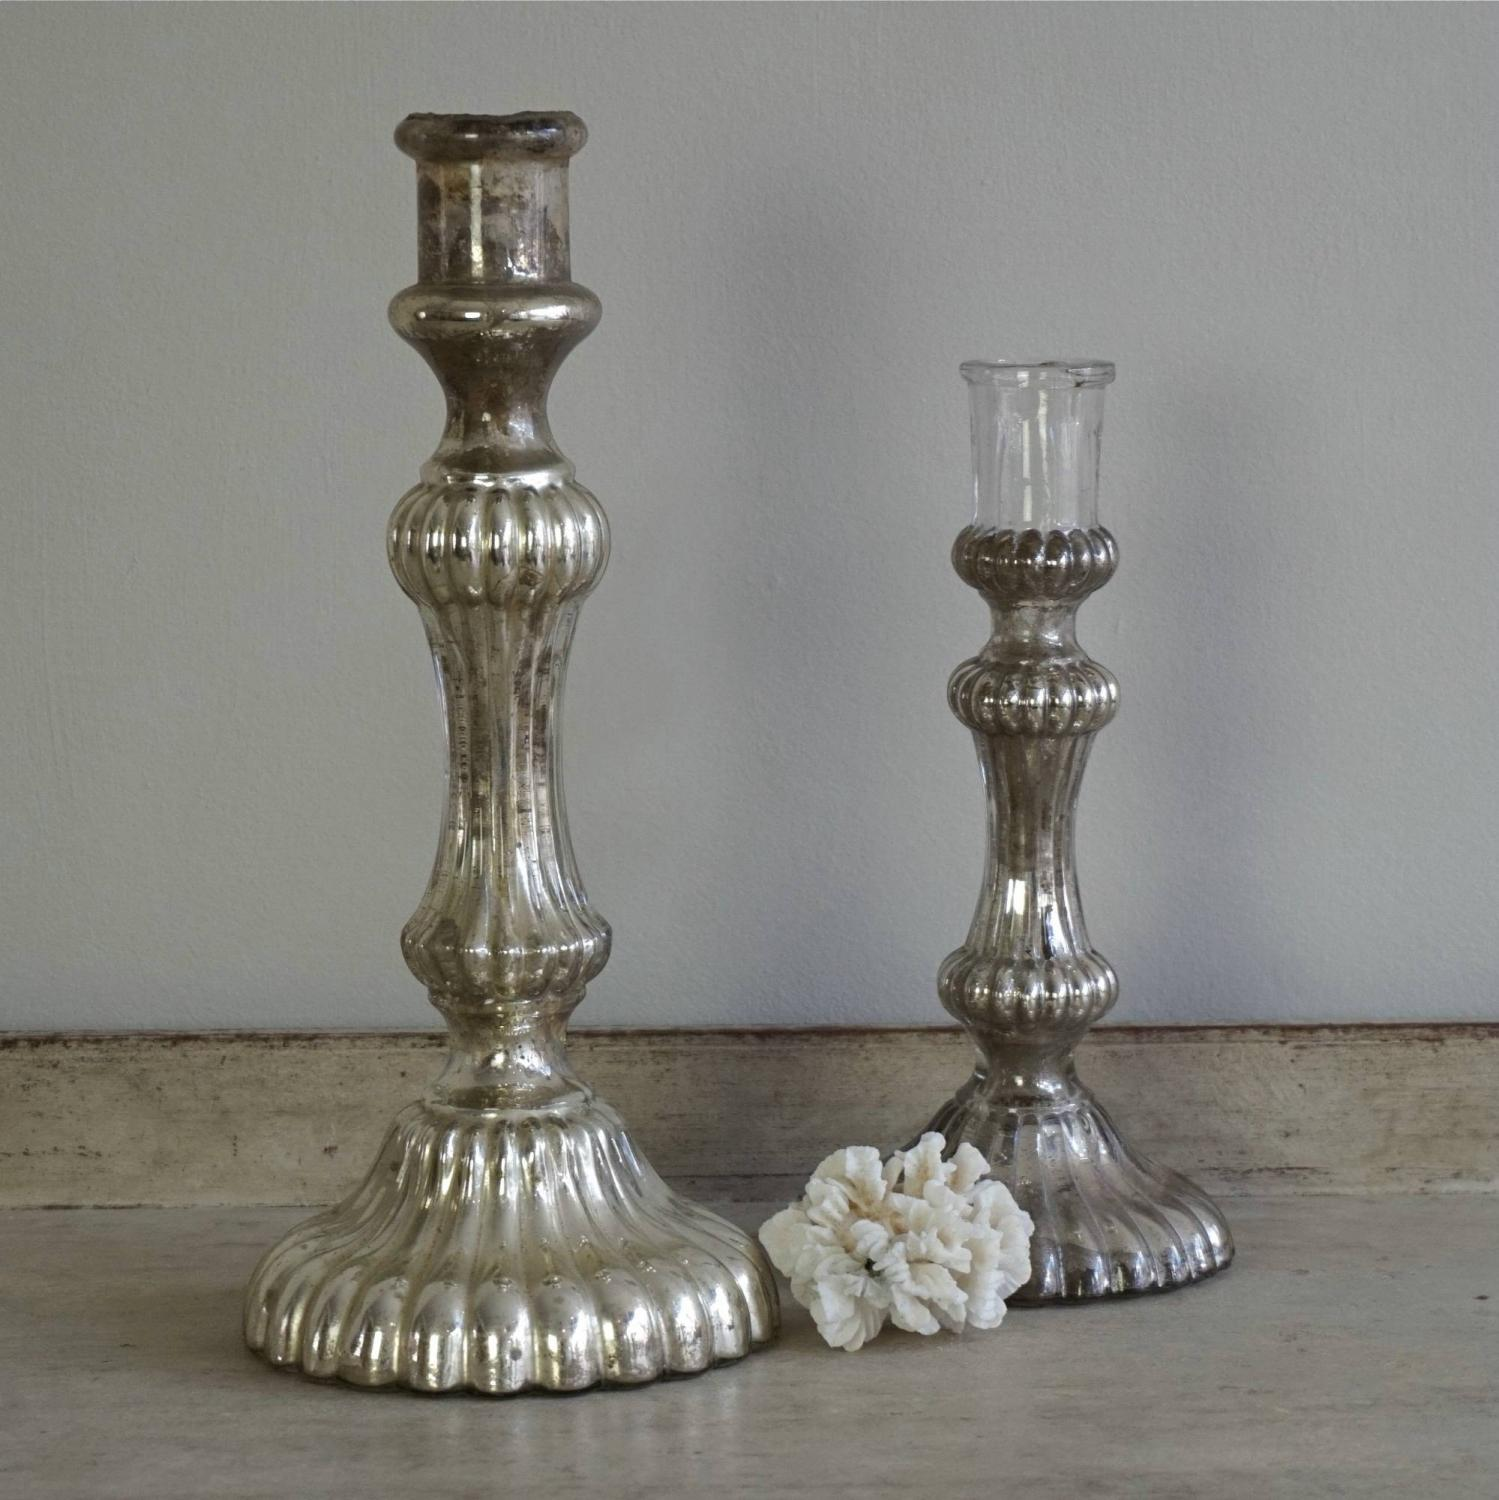 TWO 19TH CENTURY RIPPLED MERCURY GLASS CANDLESTICKS